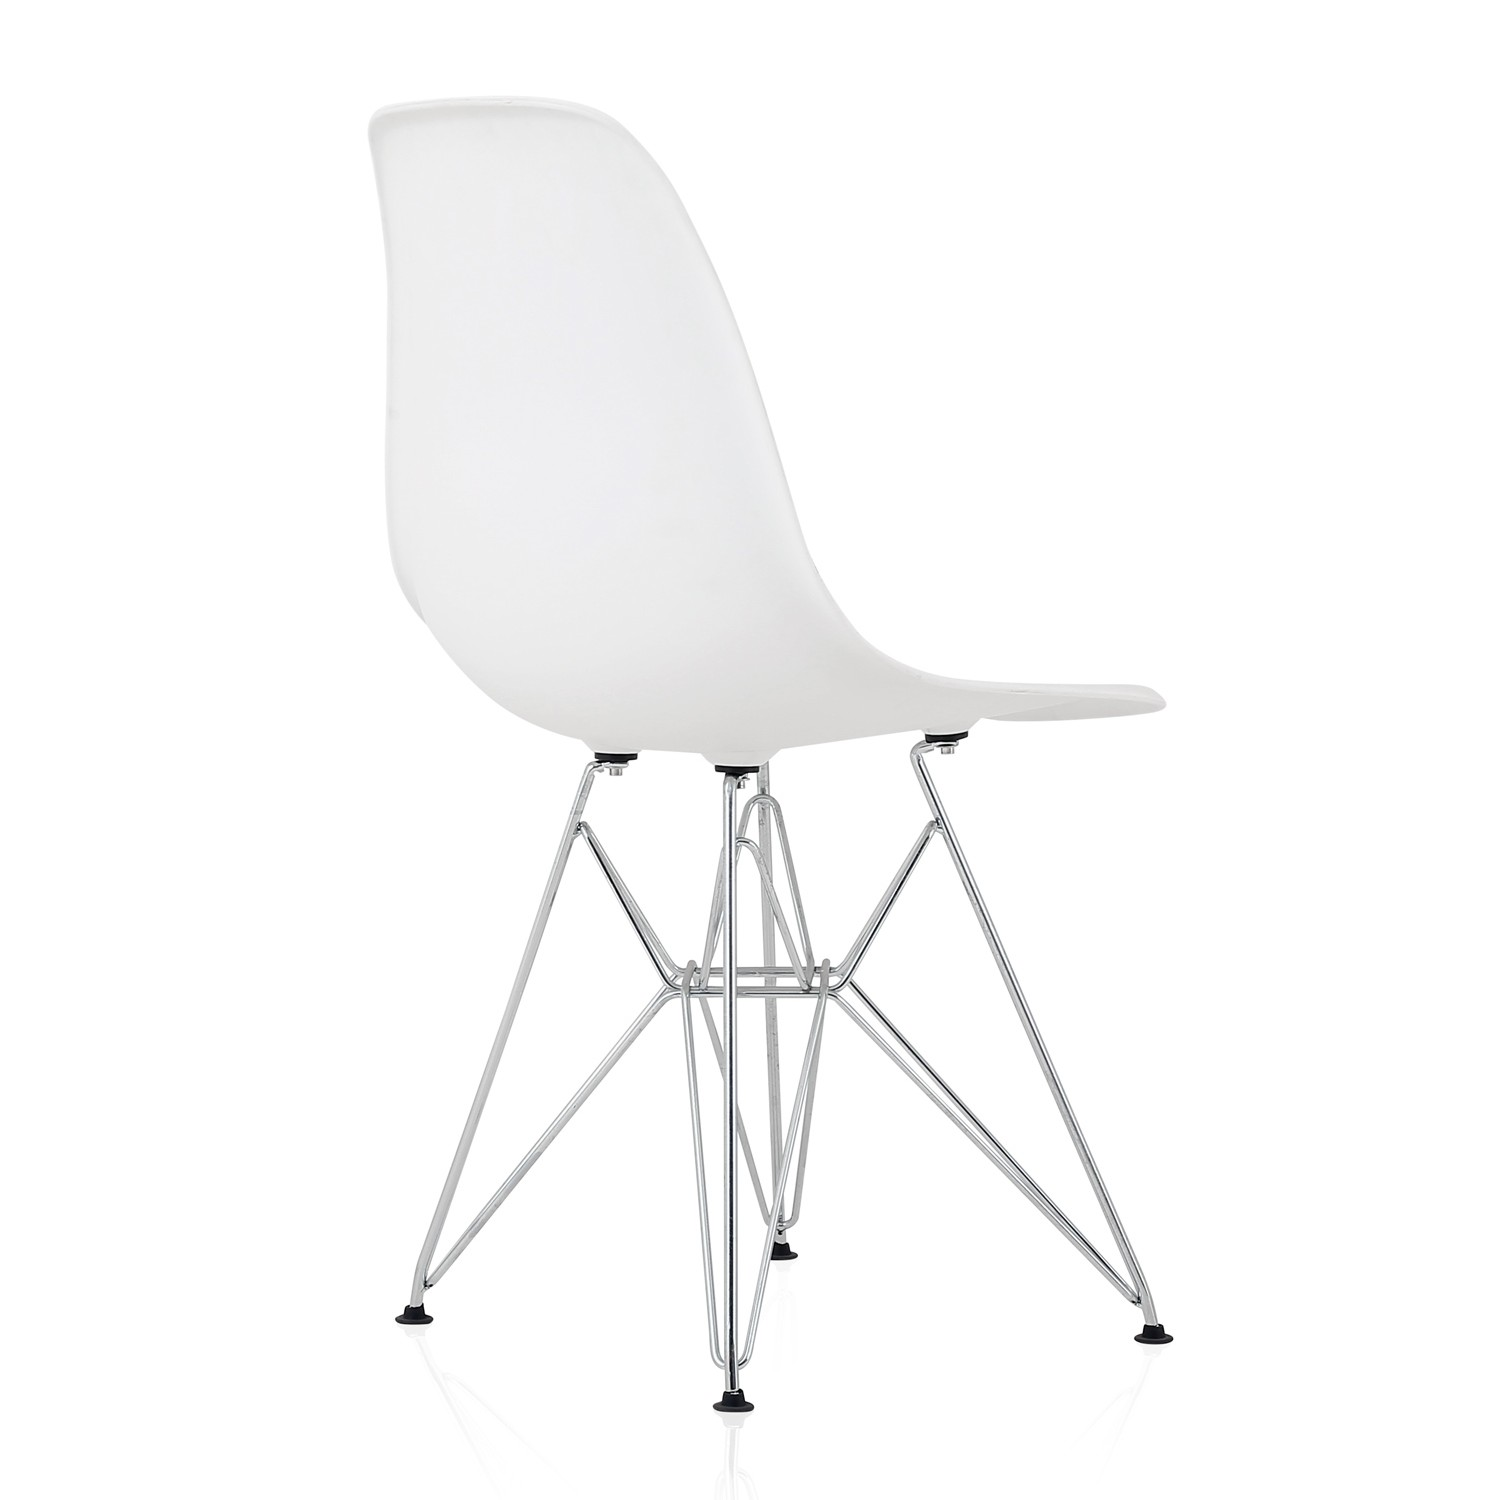 plastic chairs with stainless steel legs rocking for nursery under 100 eames style dsr molded white dining shell chair